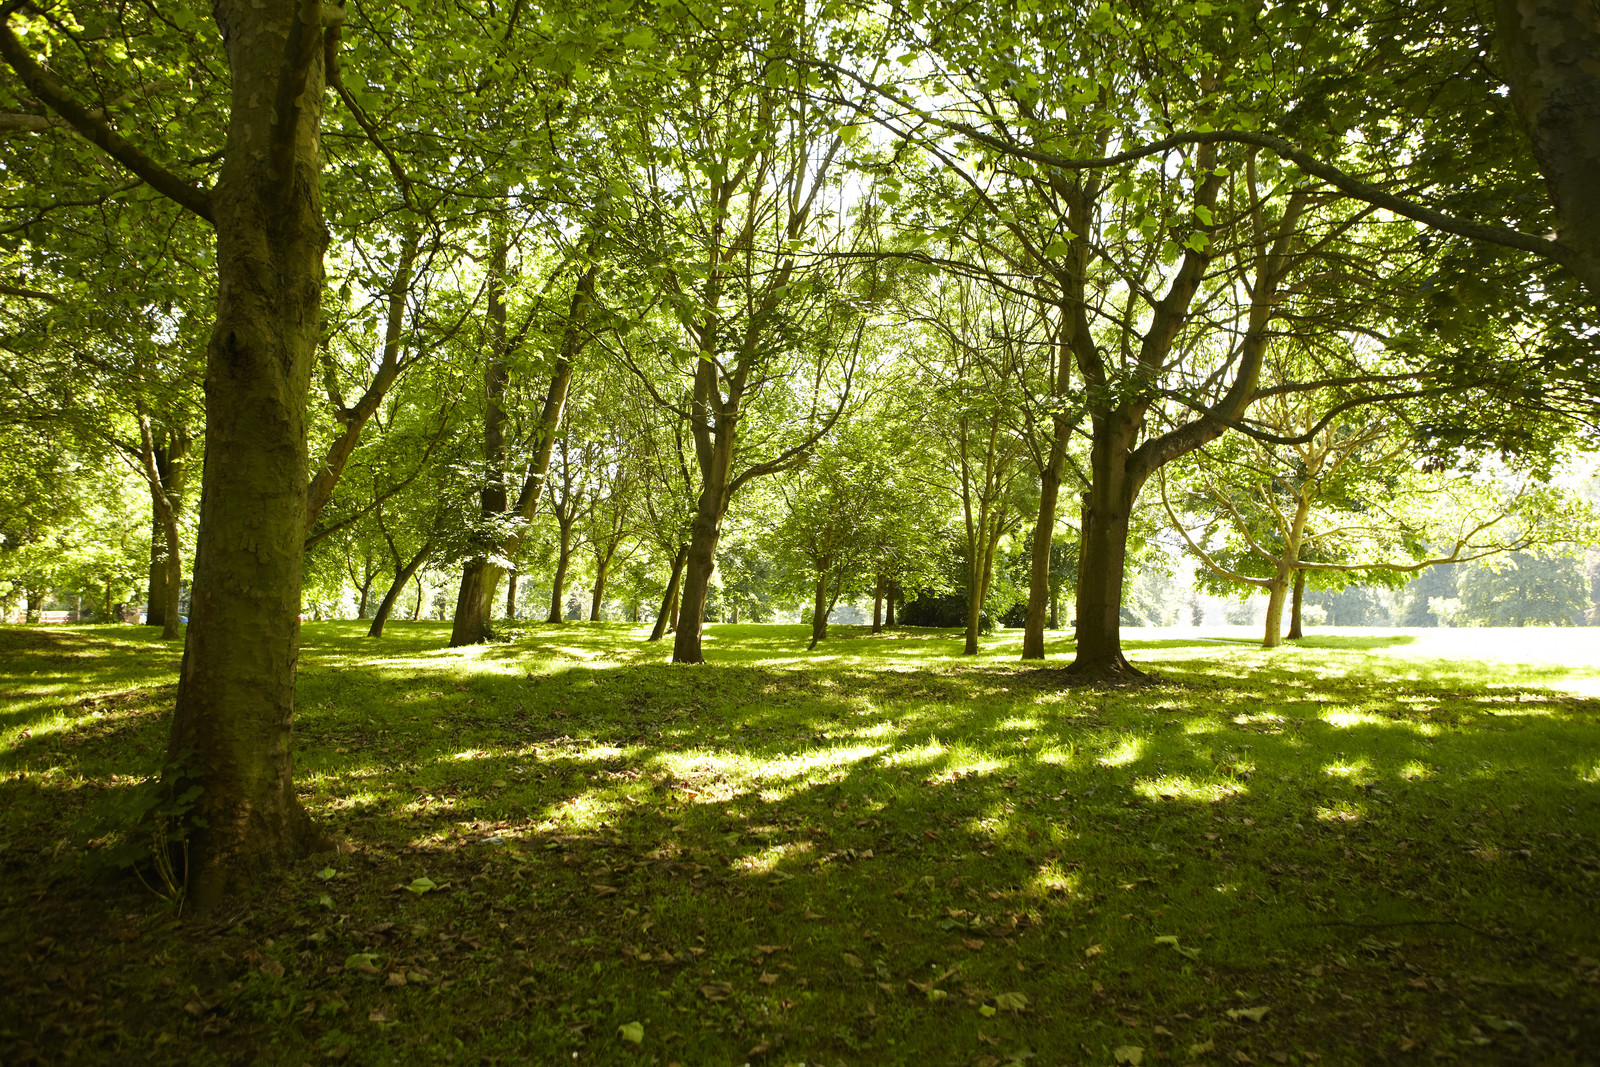 View of Abington Park full of green trees on a sunny day in Northampton